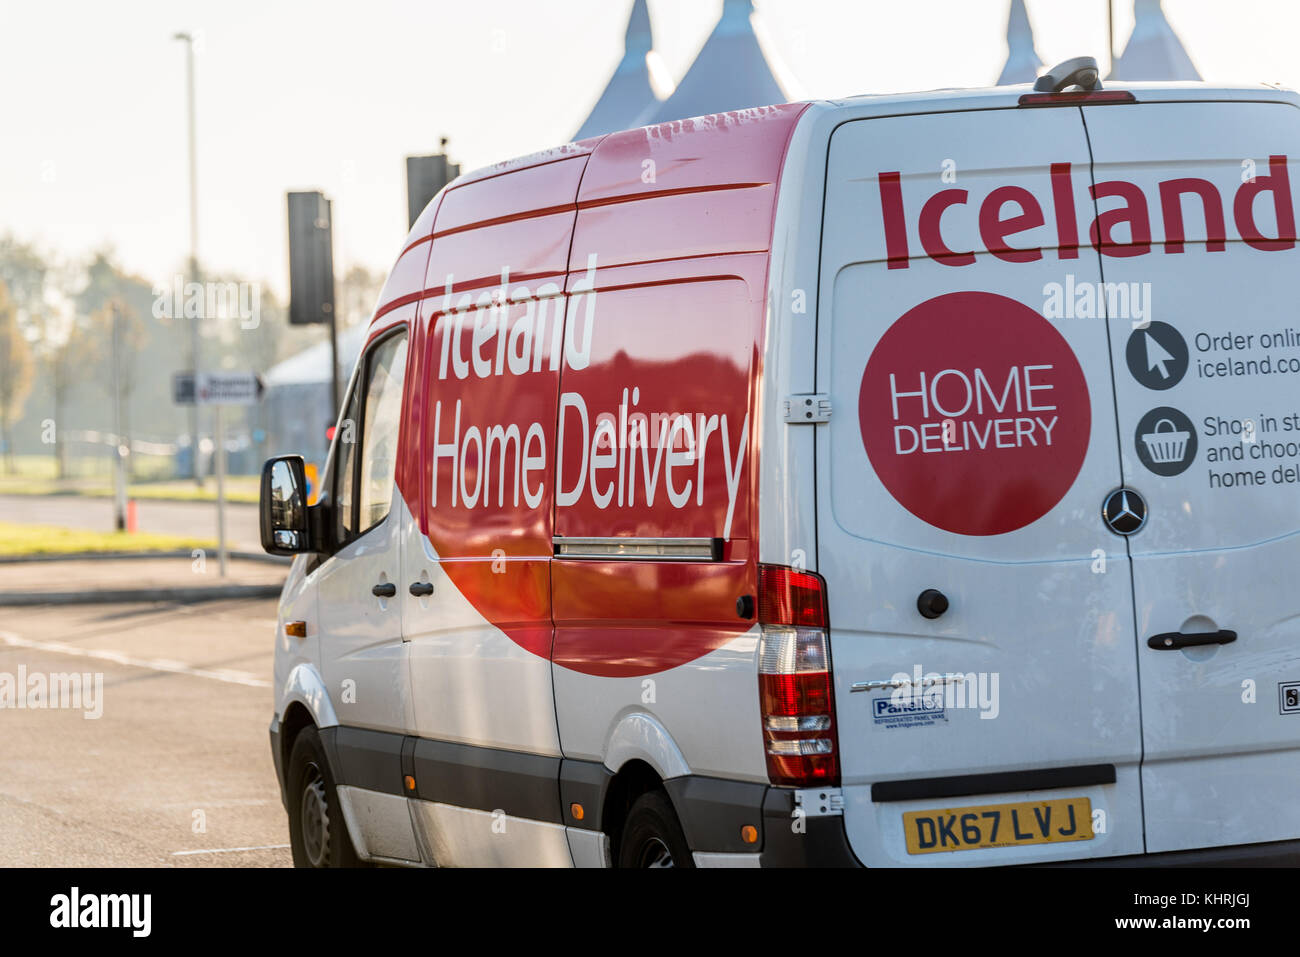 Northampton, UK - Oct 25, 2017: Iceland Home grocery delivery van. - Stock Image